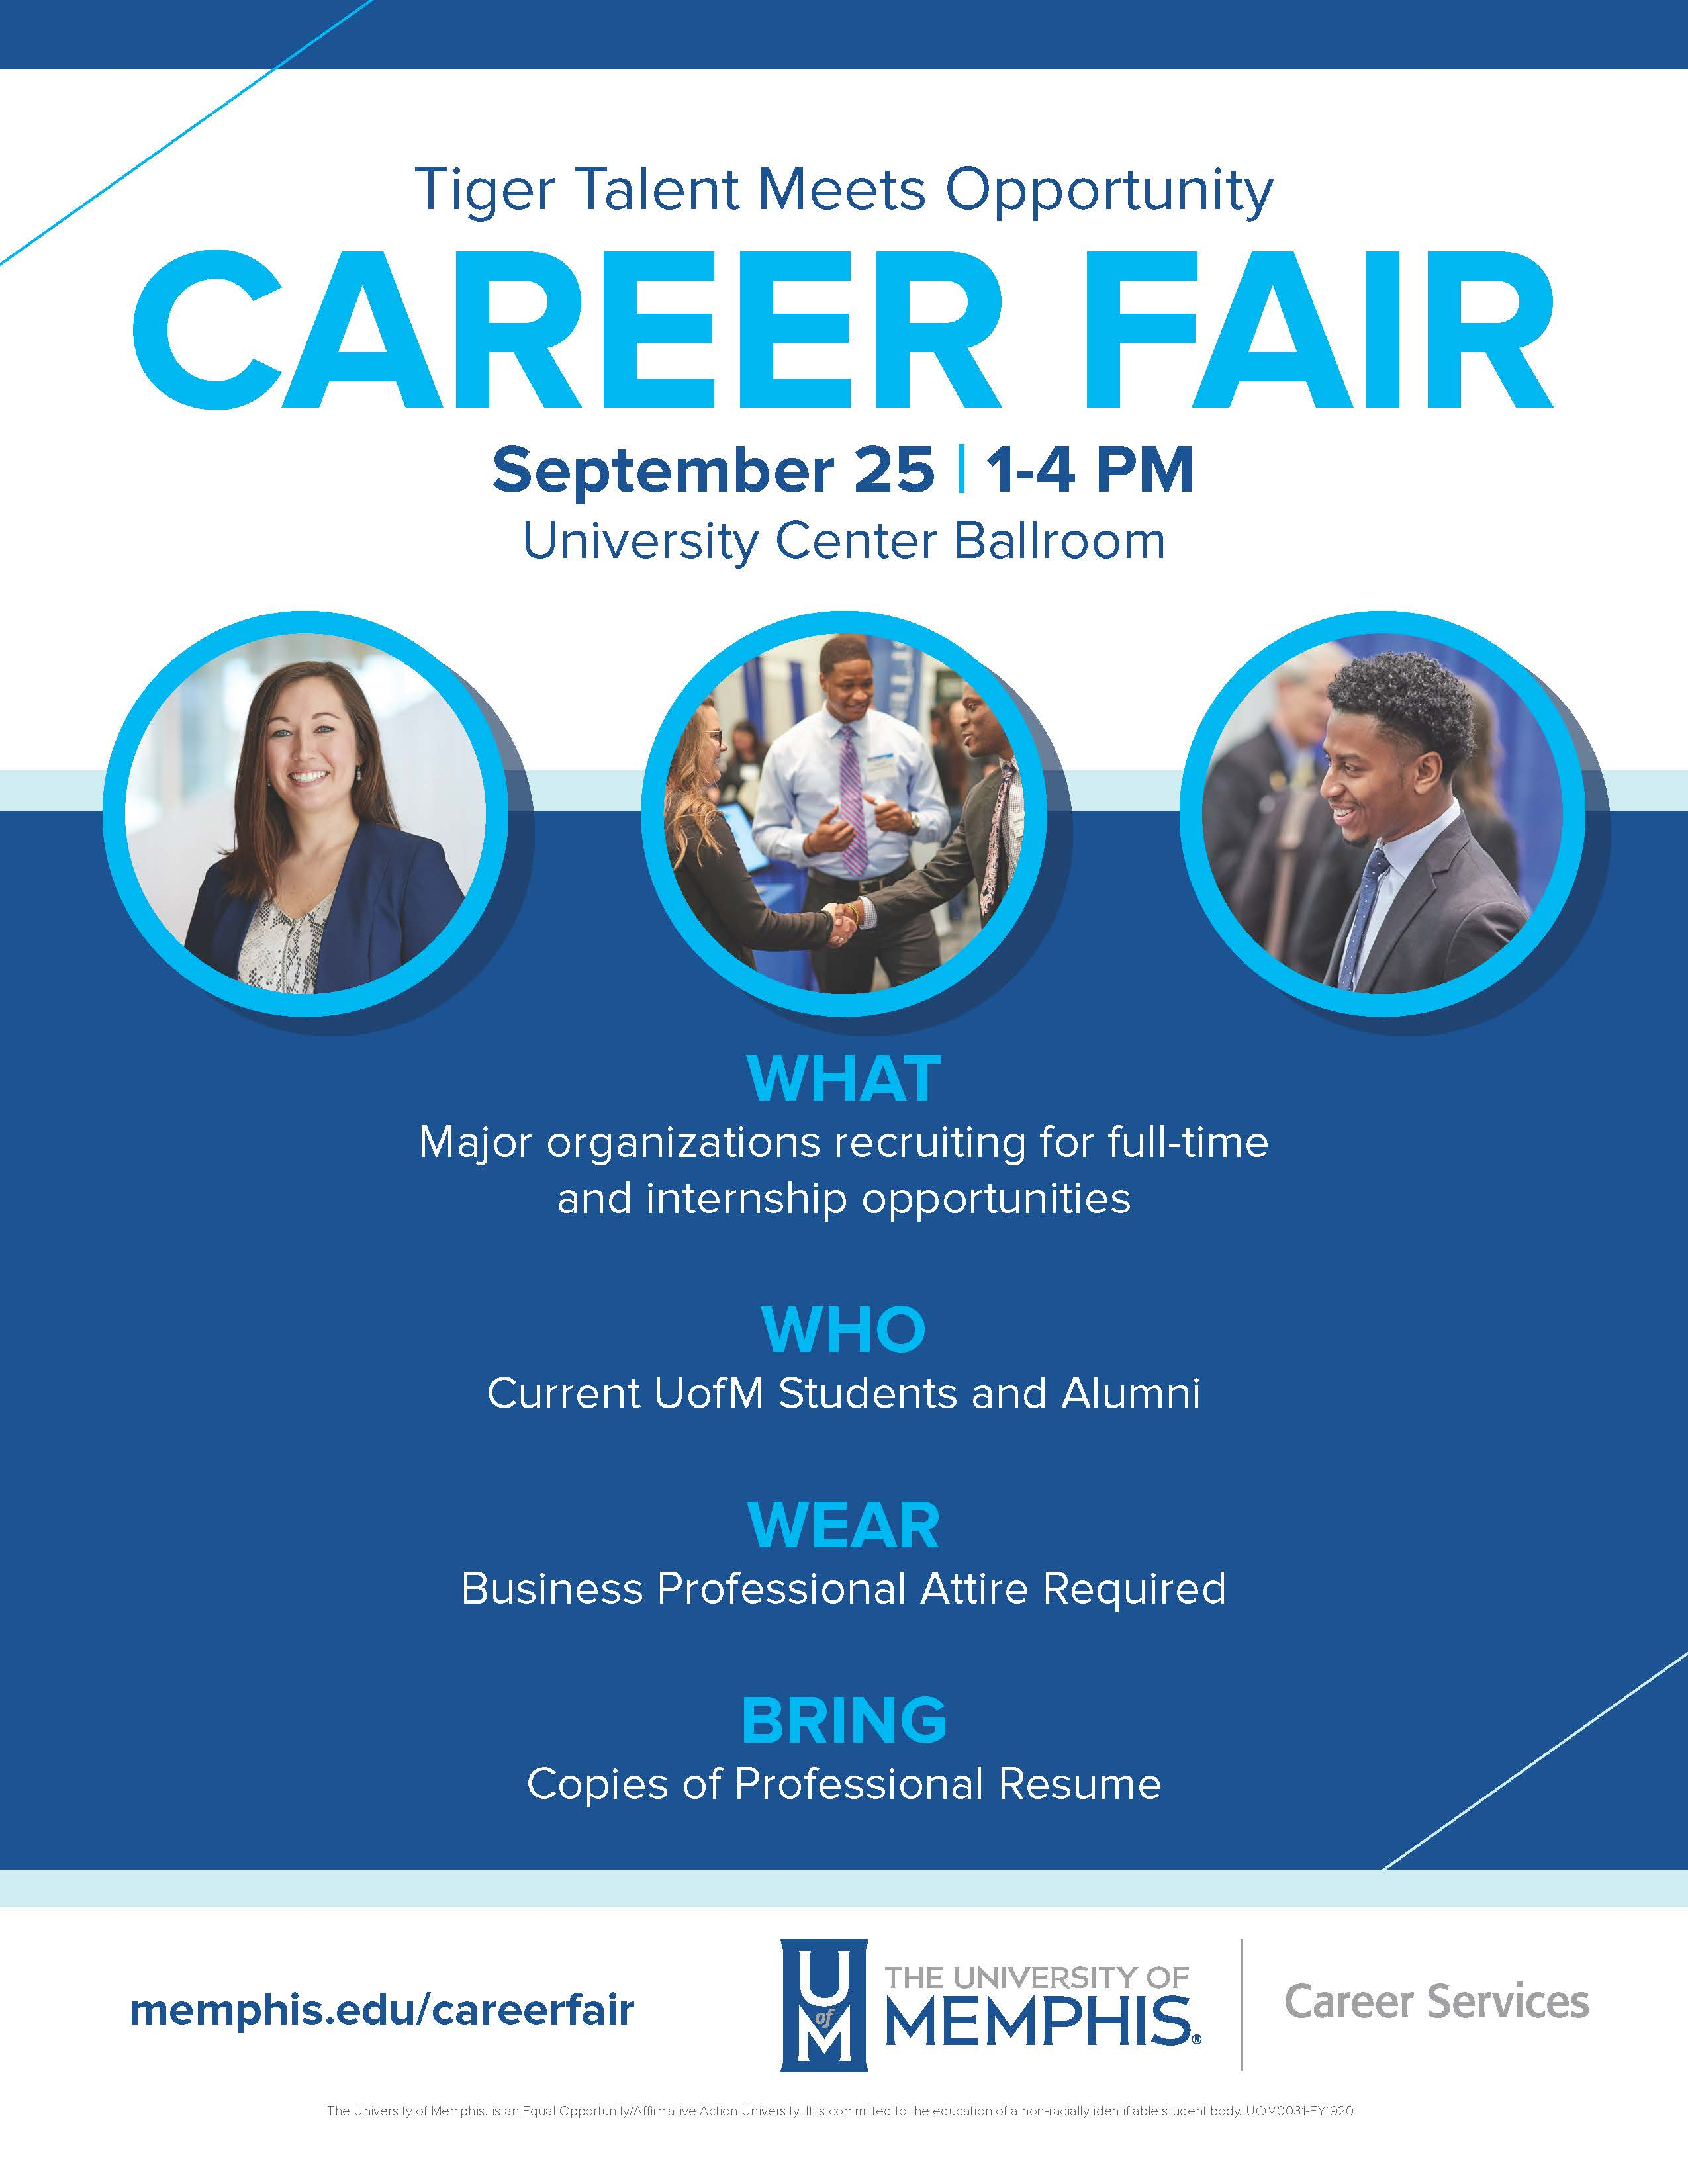 Tiger Talent Meets Opportunity CAREER FAIR September 25 | 1-4 PM University Center Ballroom WHAT Major organizations recruiting for full-time and internship opportunities WHO Current UofM Students and Alumni WEAR Business Professional Attire Required BRING Copies of Professional Resume memphis.edu/careerfair The University of Memphis, is an Equal Opportunity/Affirmative Action University. It is committed to the education of a non-racially identifiable student body.